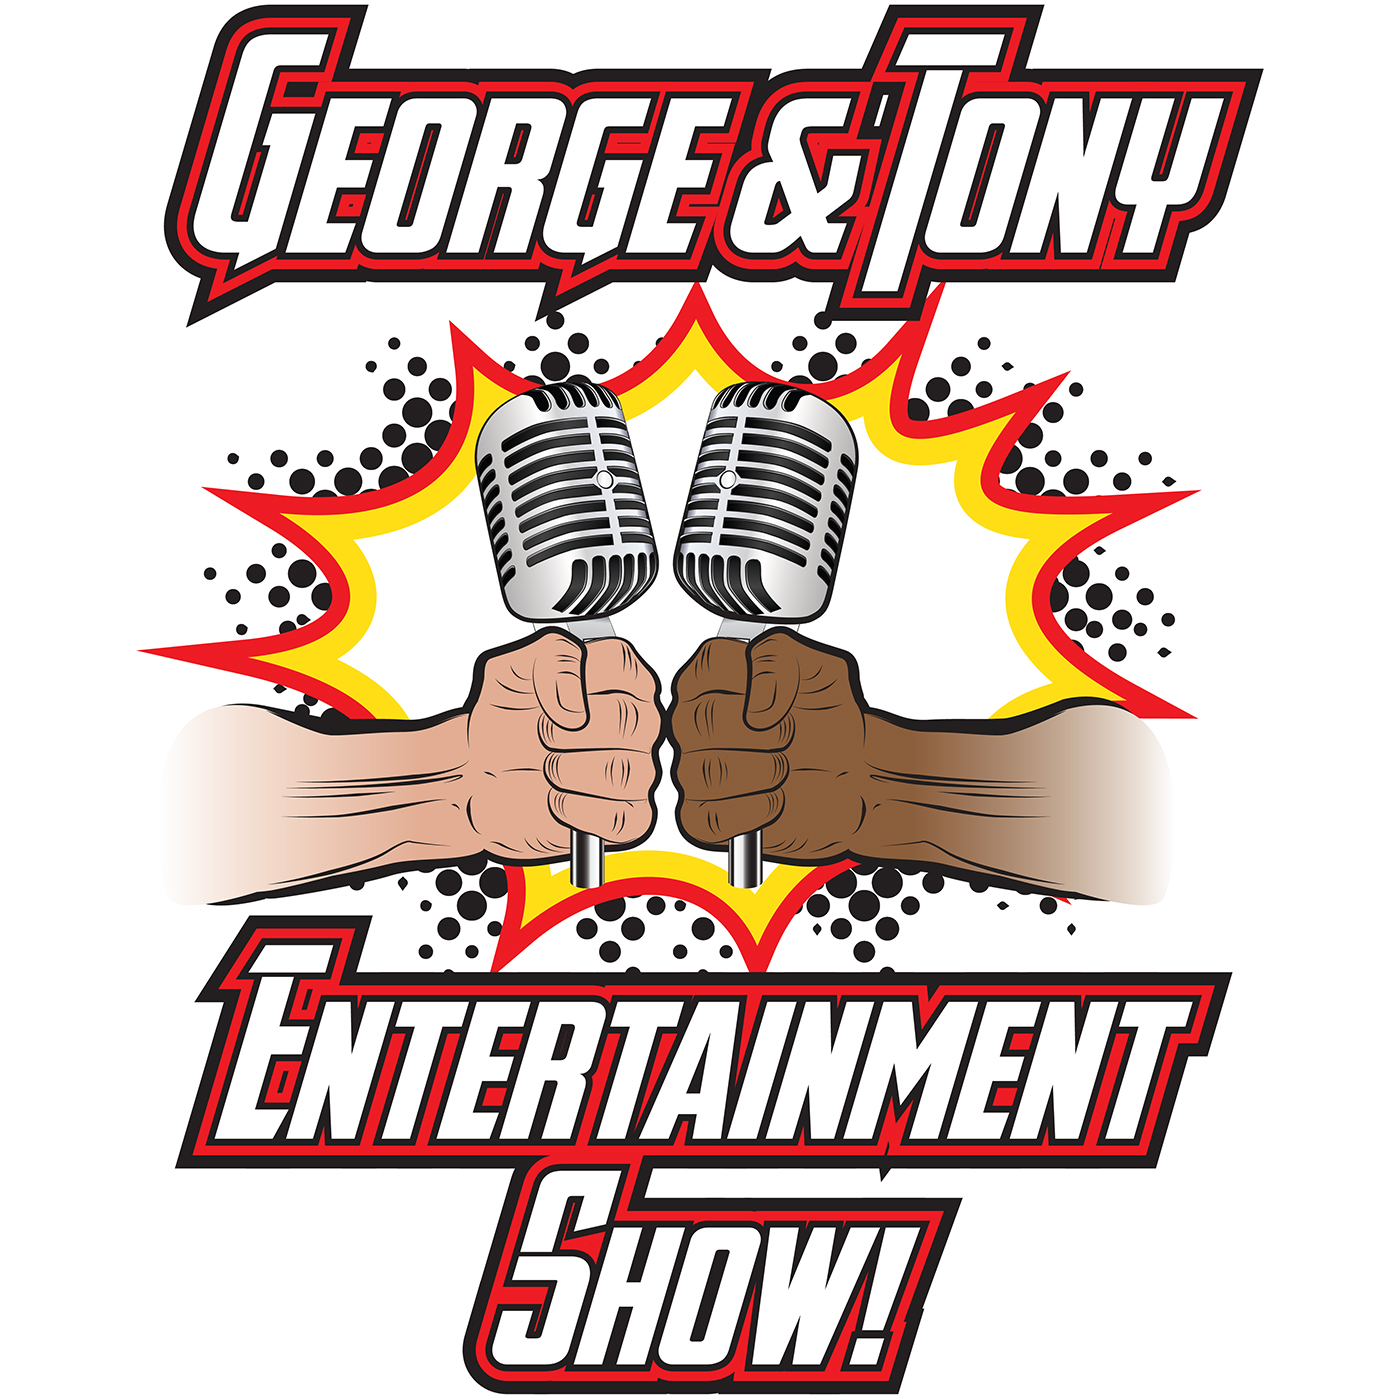 George and Tony Entertainment Show #44